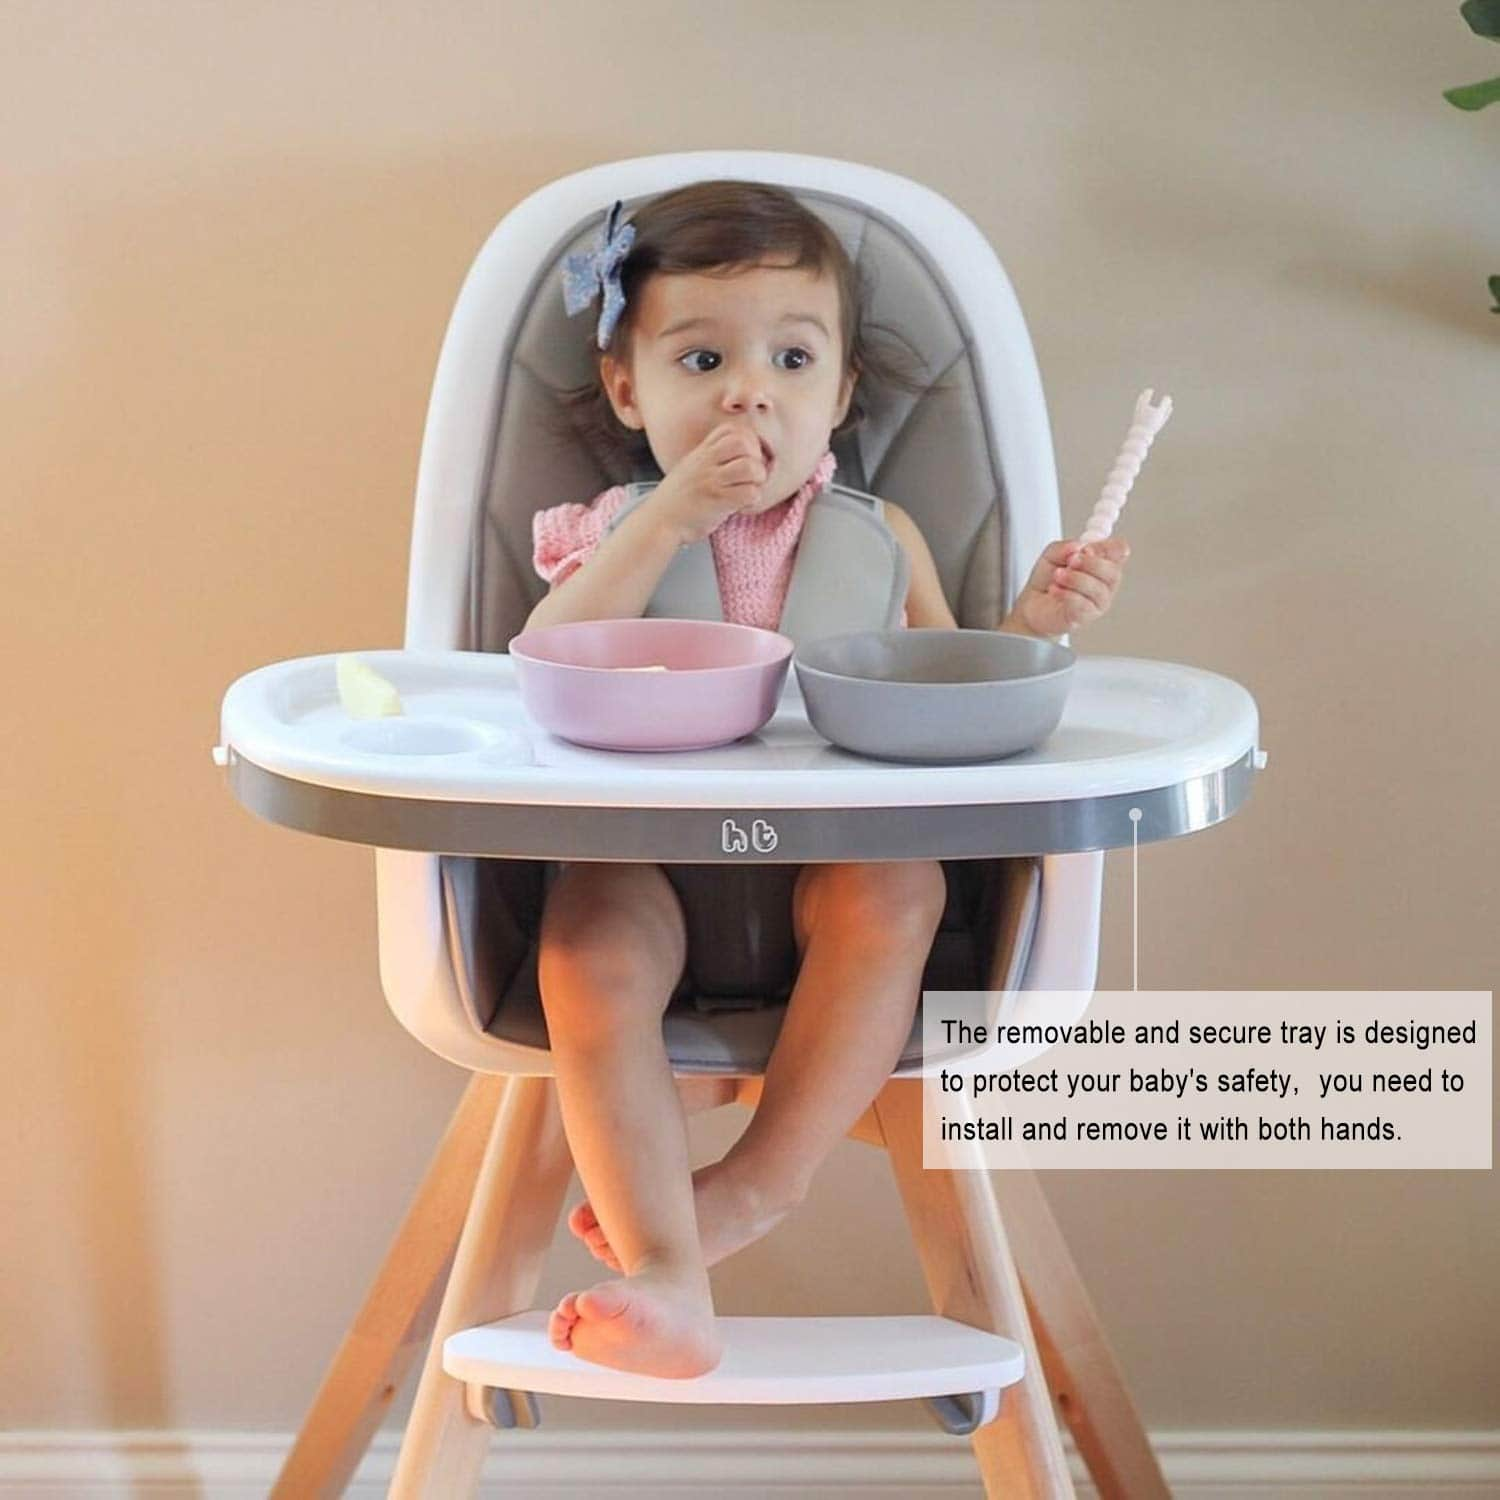 hm tech baby high chair image